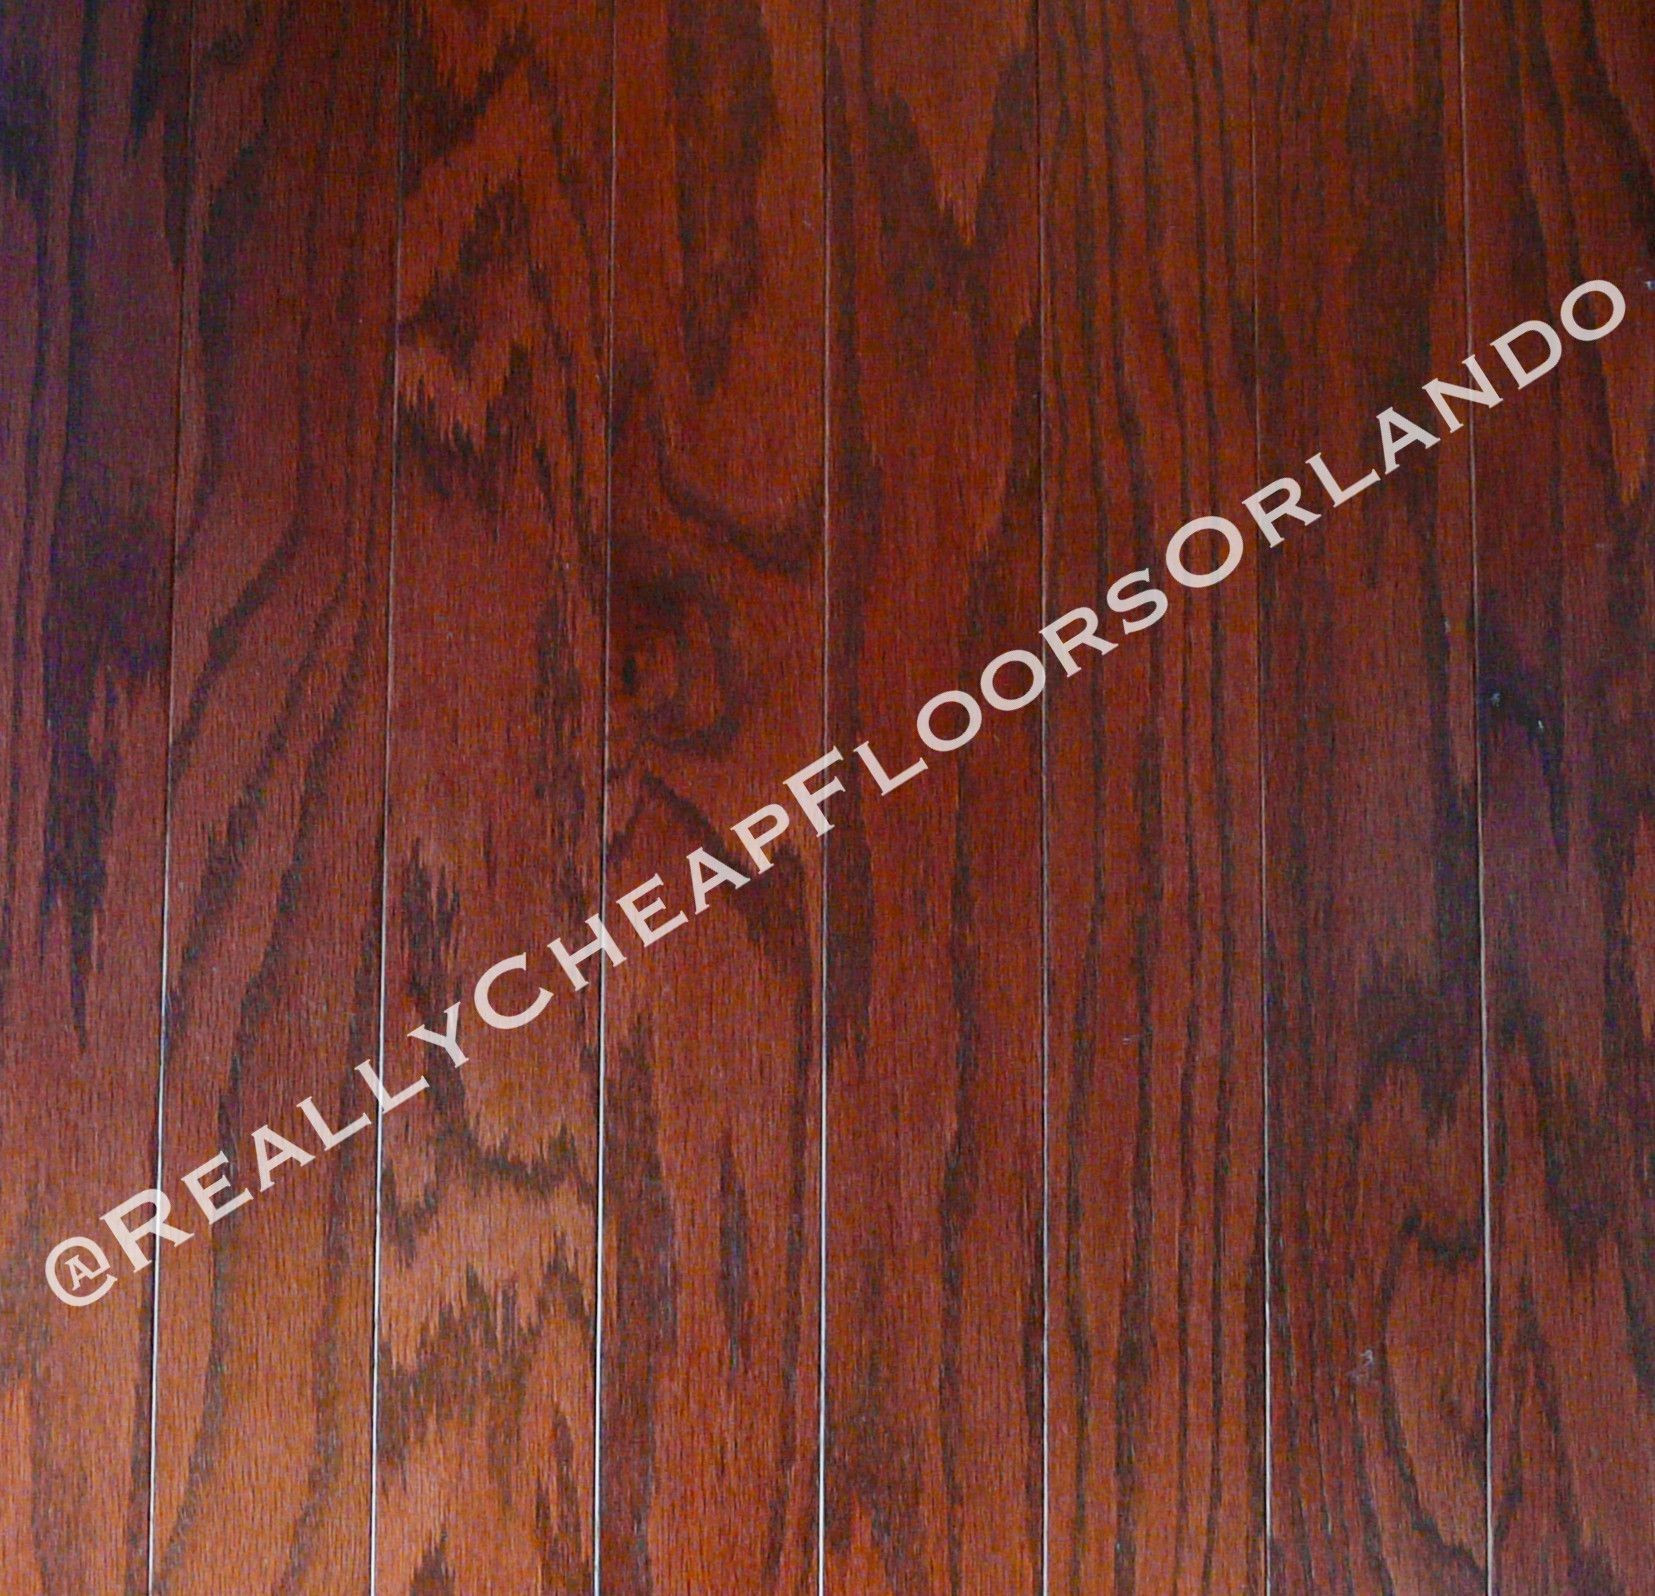 bella hardwood flooring prices of 19 new cheapest hardwood flooring photograph dizpos com with regard to cheapest hardwood flooring inspirational american made hardwood flooring at the cheapest prices located at photograph of